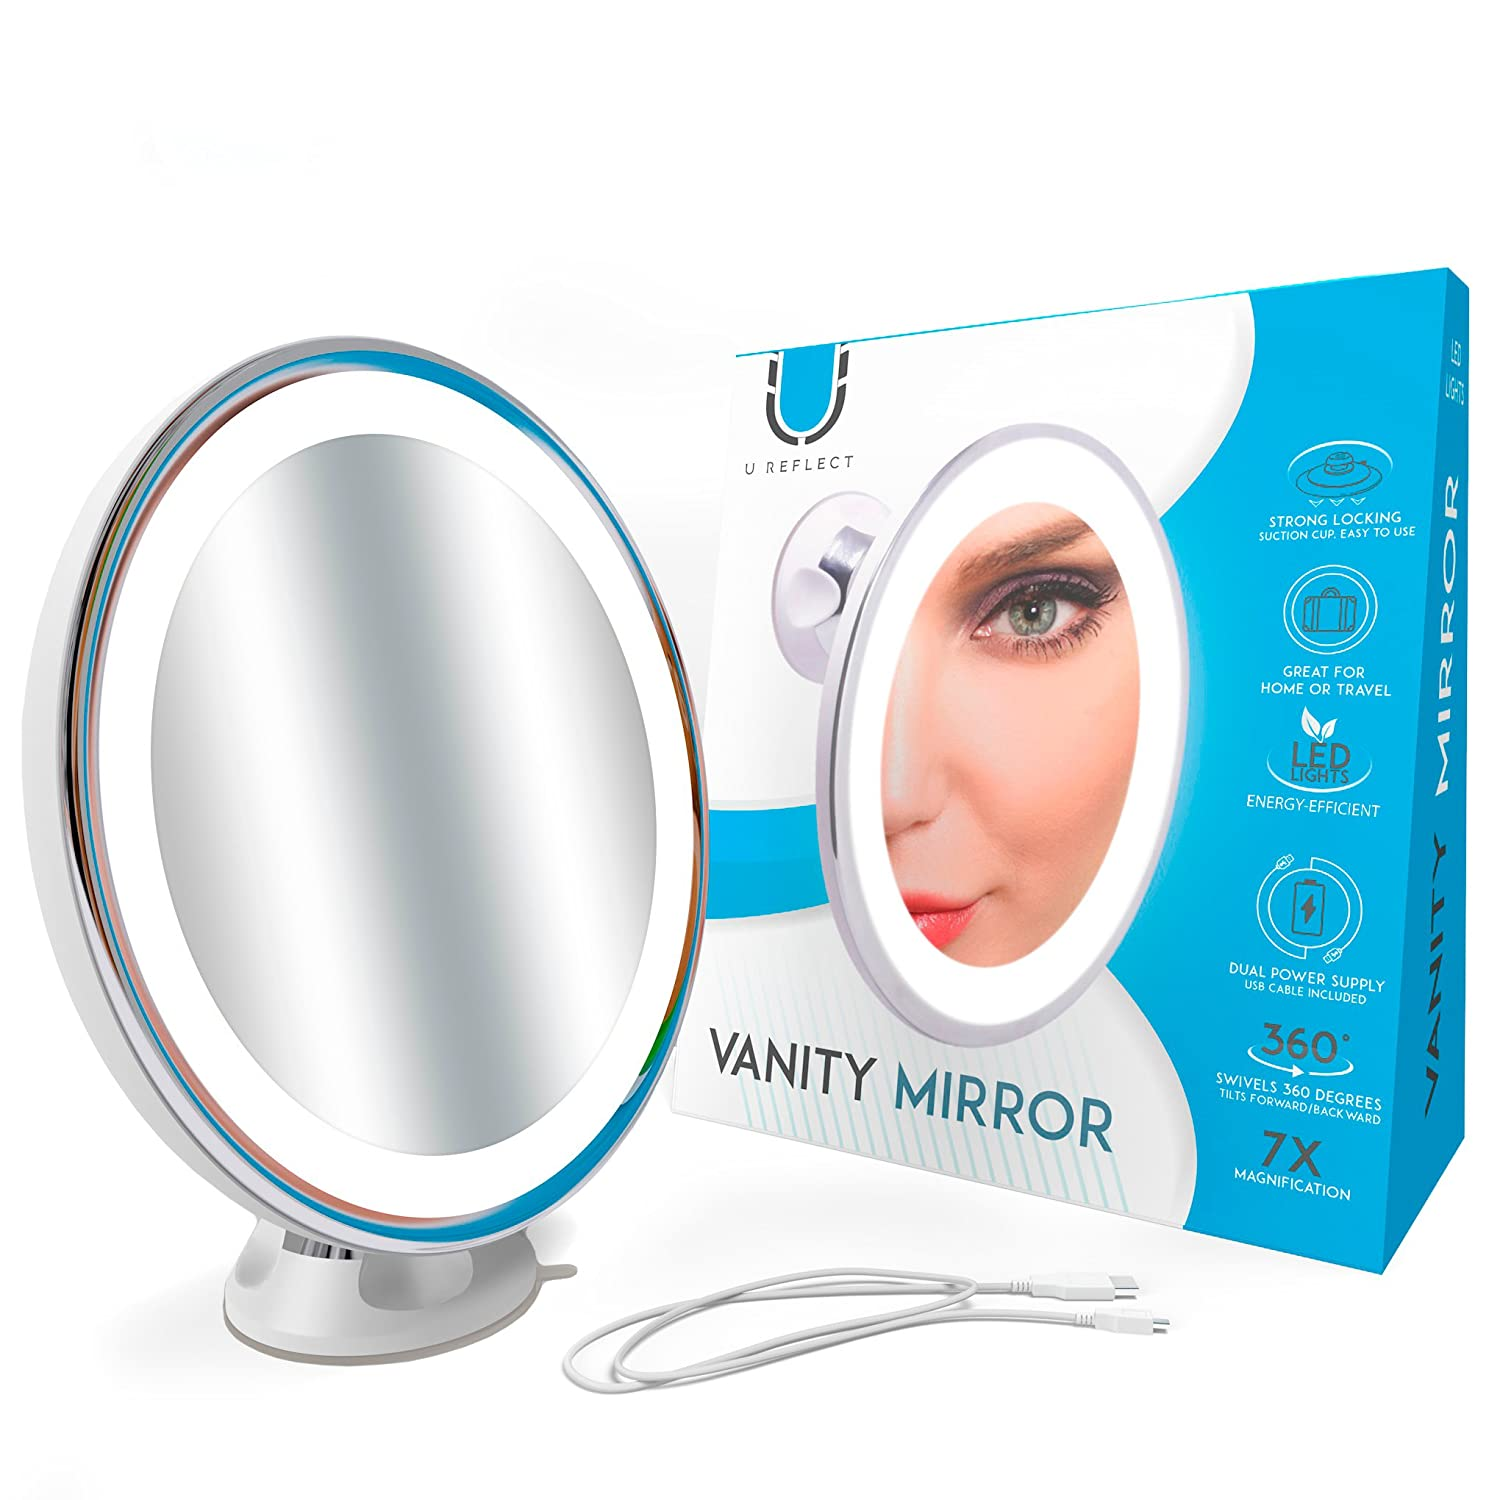 U Reflect Lighted Makeup Mirror, 7X Magnifying Vanity Mirror with LED Lights, Dual Power Supply with USB Cable Included, Great for Bathroom and Travel, Powerful Locking Suction Cup, Over 7 Inches Wide Westeez